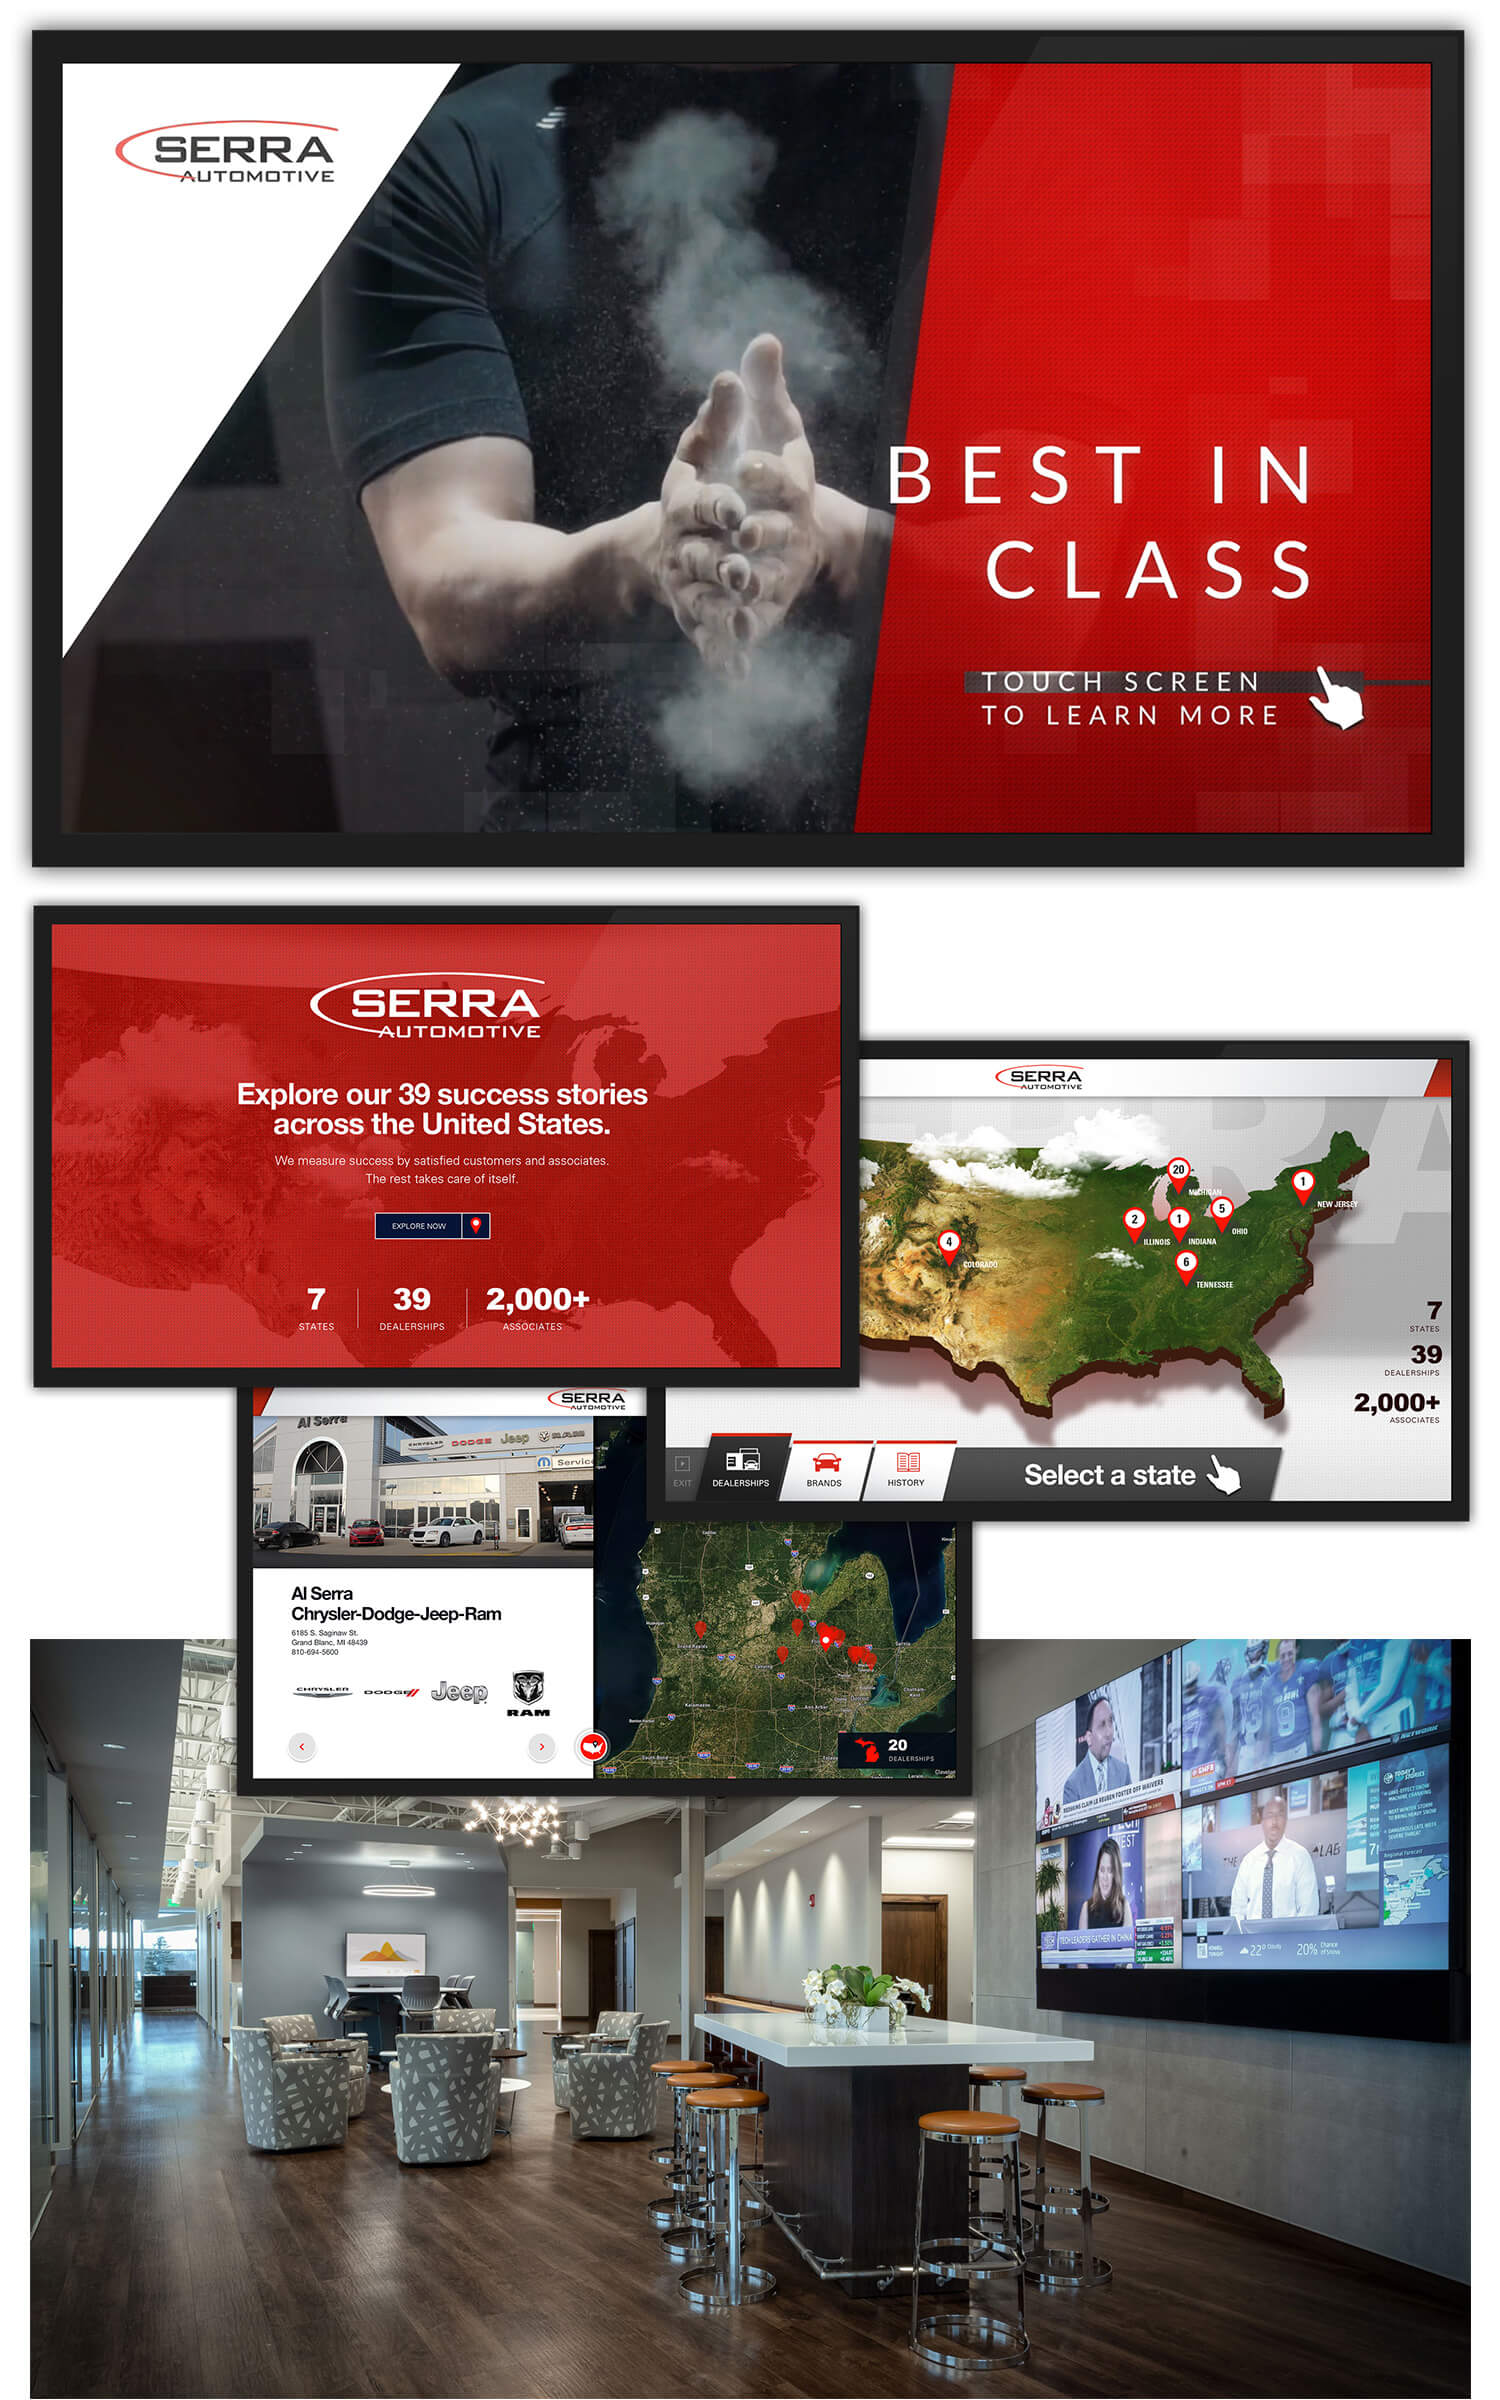 Serra Interactive Screens